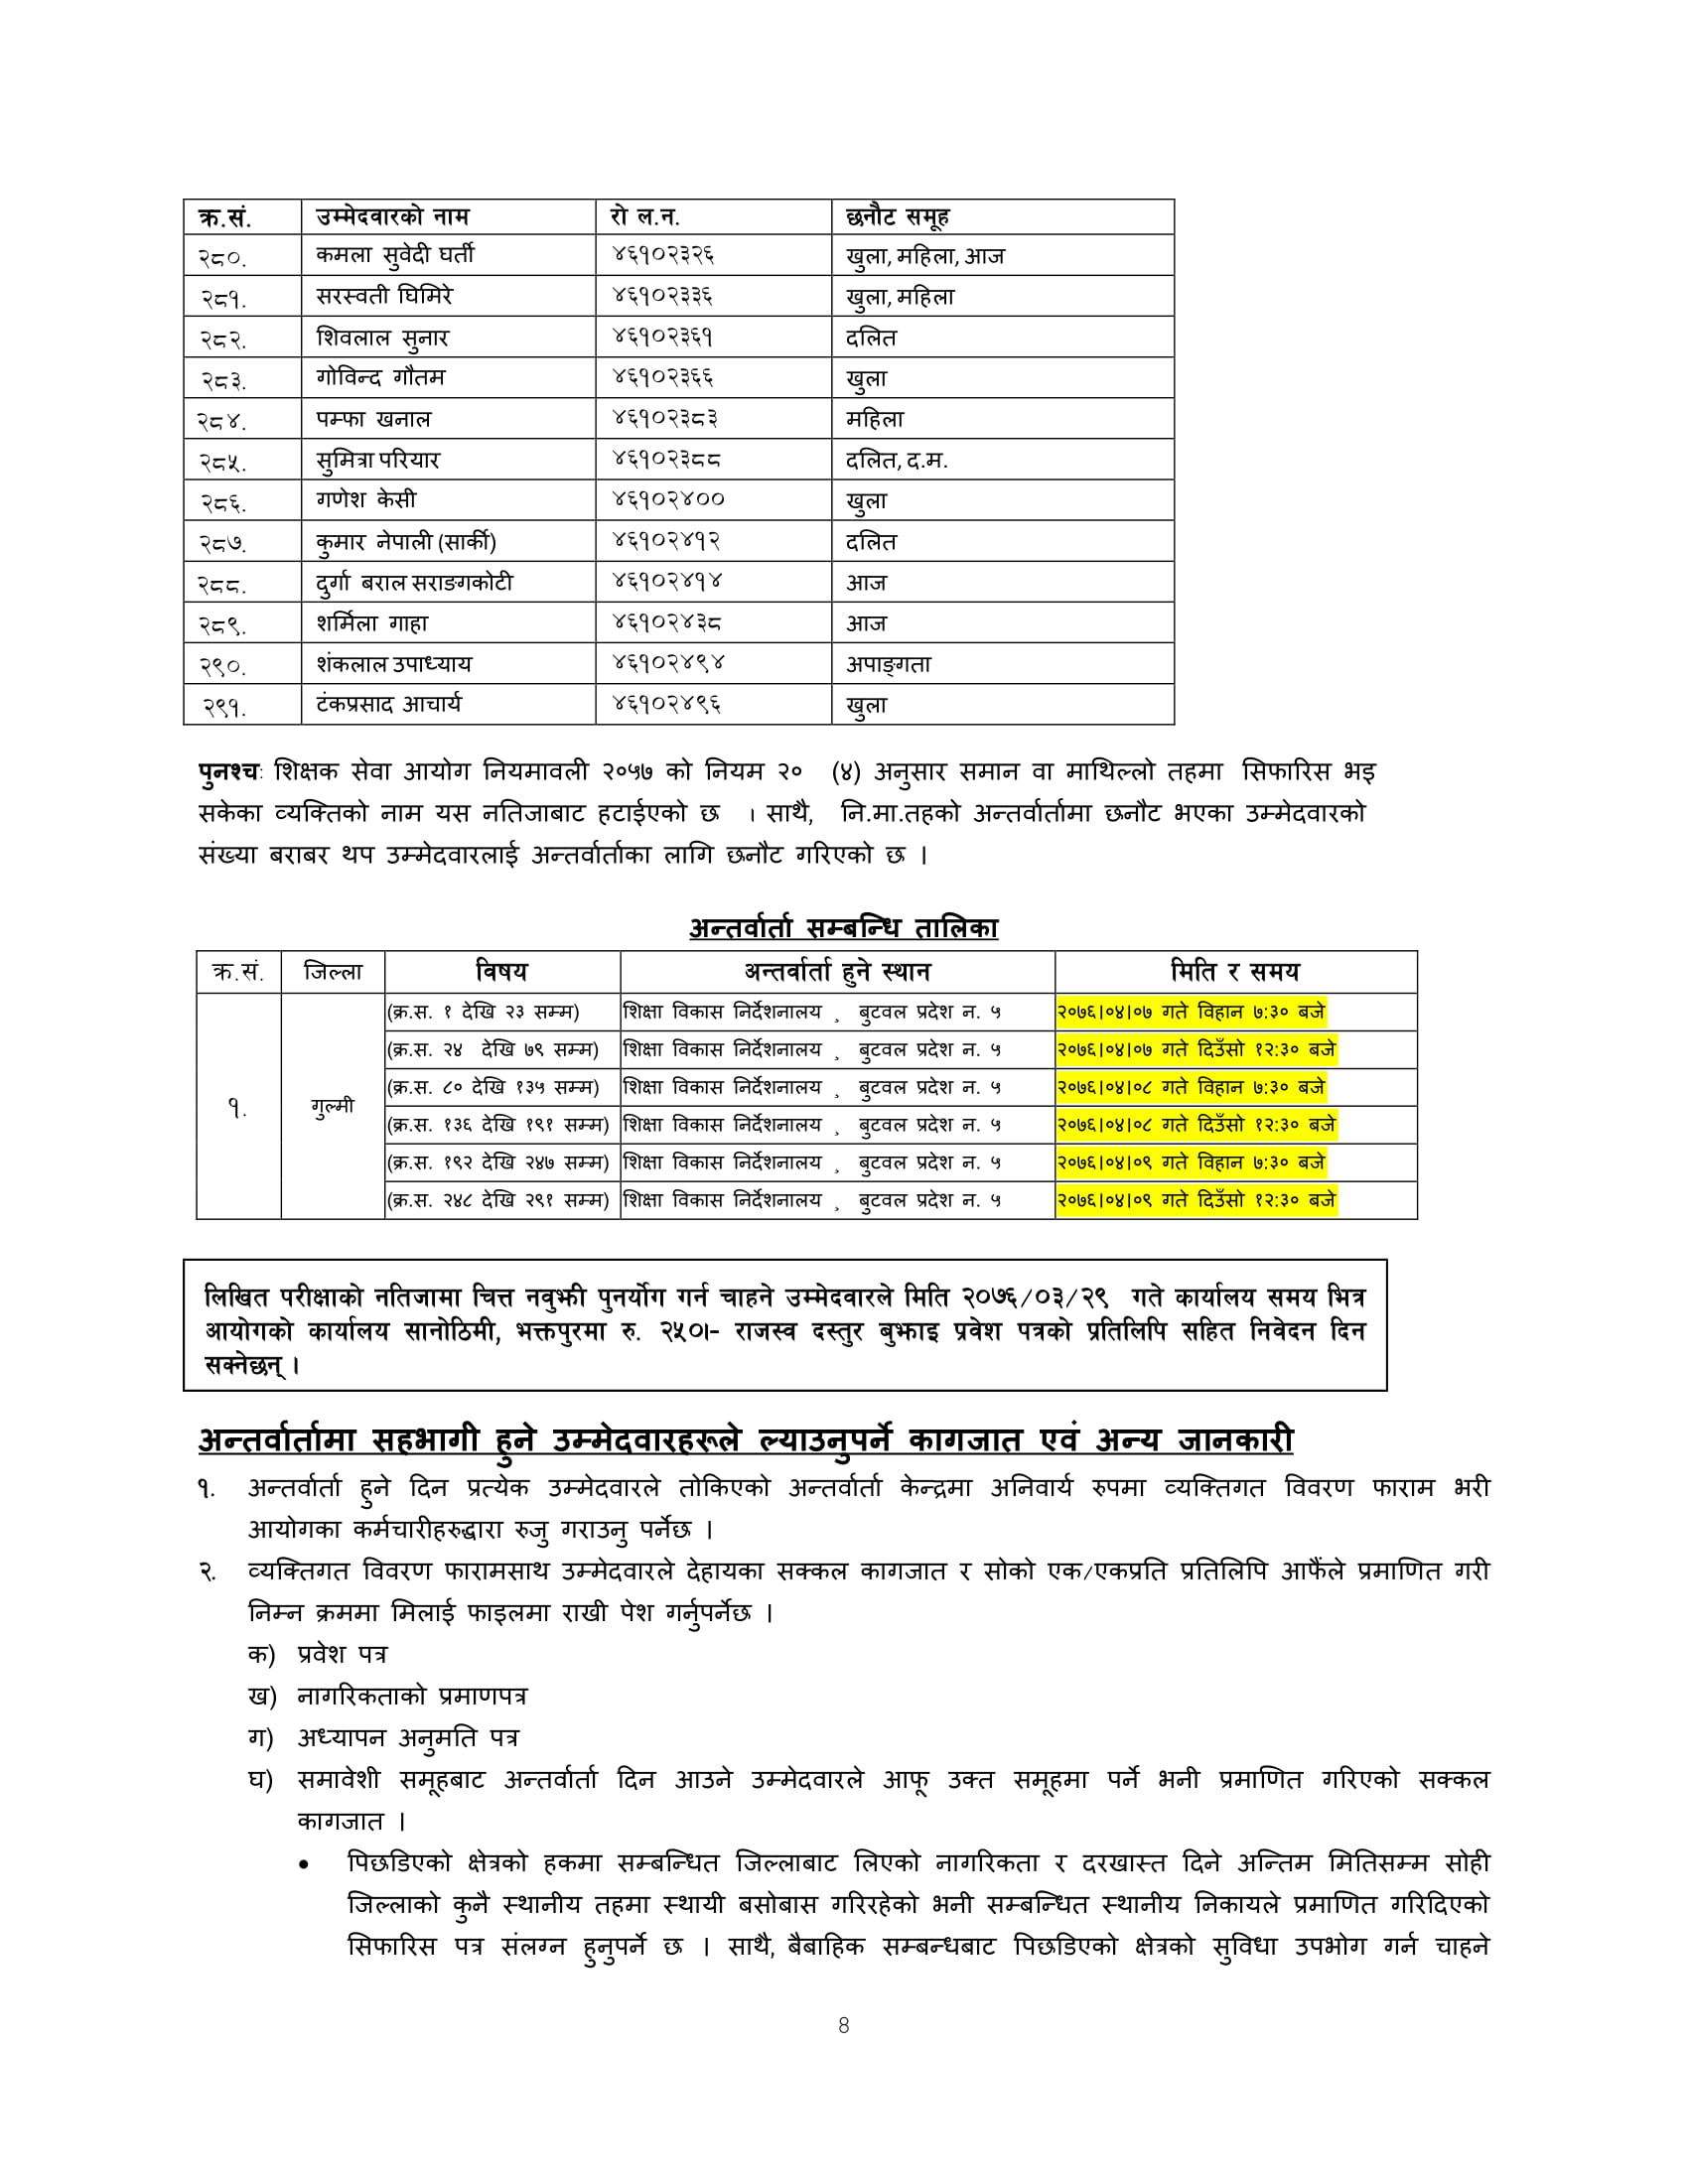 TSC Nepal Primary Level Result This is internal exam TSC Nepal result. Teacher service commission has published the primary level result. The result is given according to the districts. Therefore you have to check the result in your concern district only.Instructor Service Commission ResultNext to such outcome Sajilosanjal itself is the center for training. Like you can get free directing for the understudies willing to travel to another country for the examination. Thus the instructors can get help and support for their day by day classroom showing learning exercises.TSC Nepal Open Competition Primary Level Exam ResultEducator benefit commission open rivalry will be accessible here when TSC Nepal distributes it. So continue viewing sajilosanjal.com for the outcome.At long last we might want to express particularly good luck for your forthcoming meeting.Shikshak Sewa Aayog Primary NatijaThen again we give free and online plate frame for dialog. In these gathering exchange instructors, understudies and guardians can participate effectively.